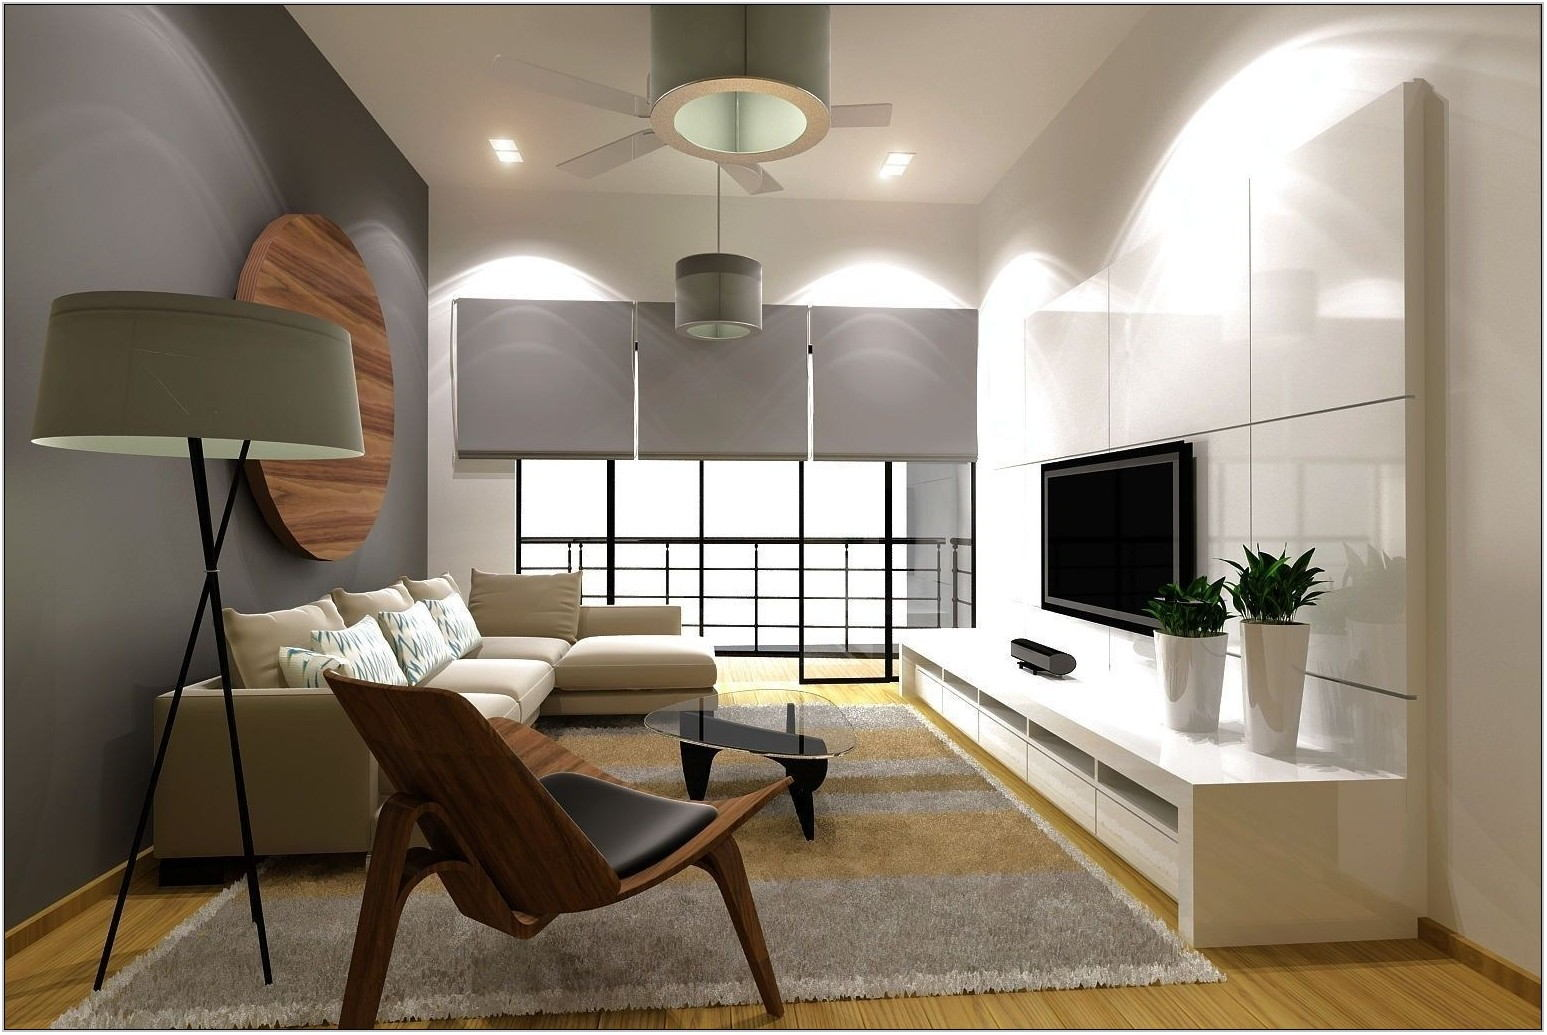 Interior Design For Condo Living Room